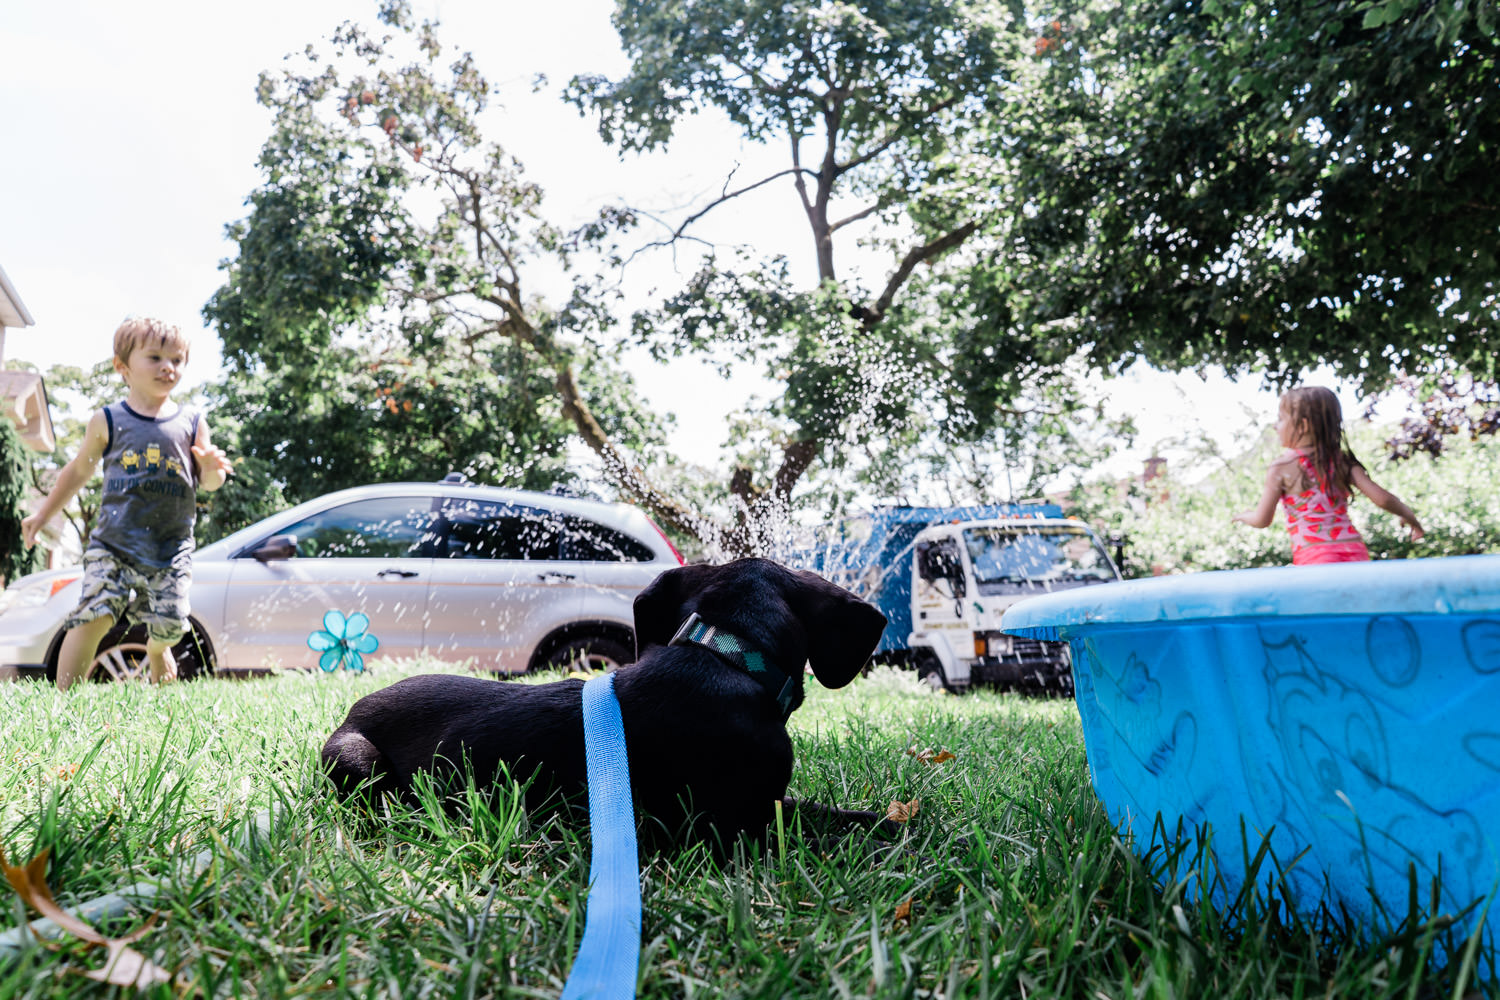 A dog watches two kids playing in the sprinkler.